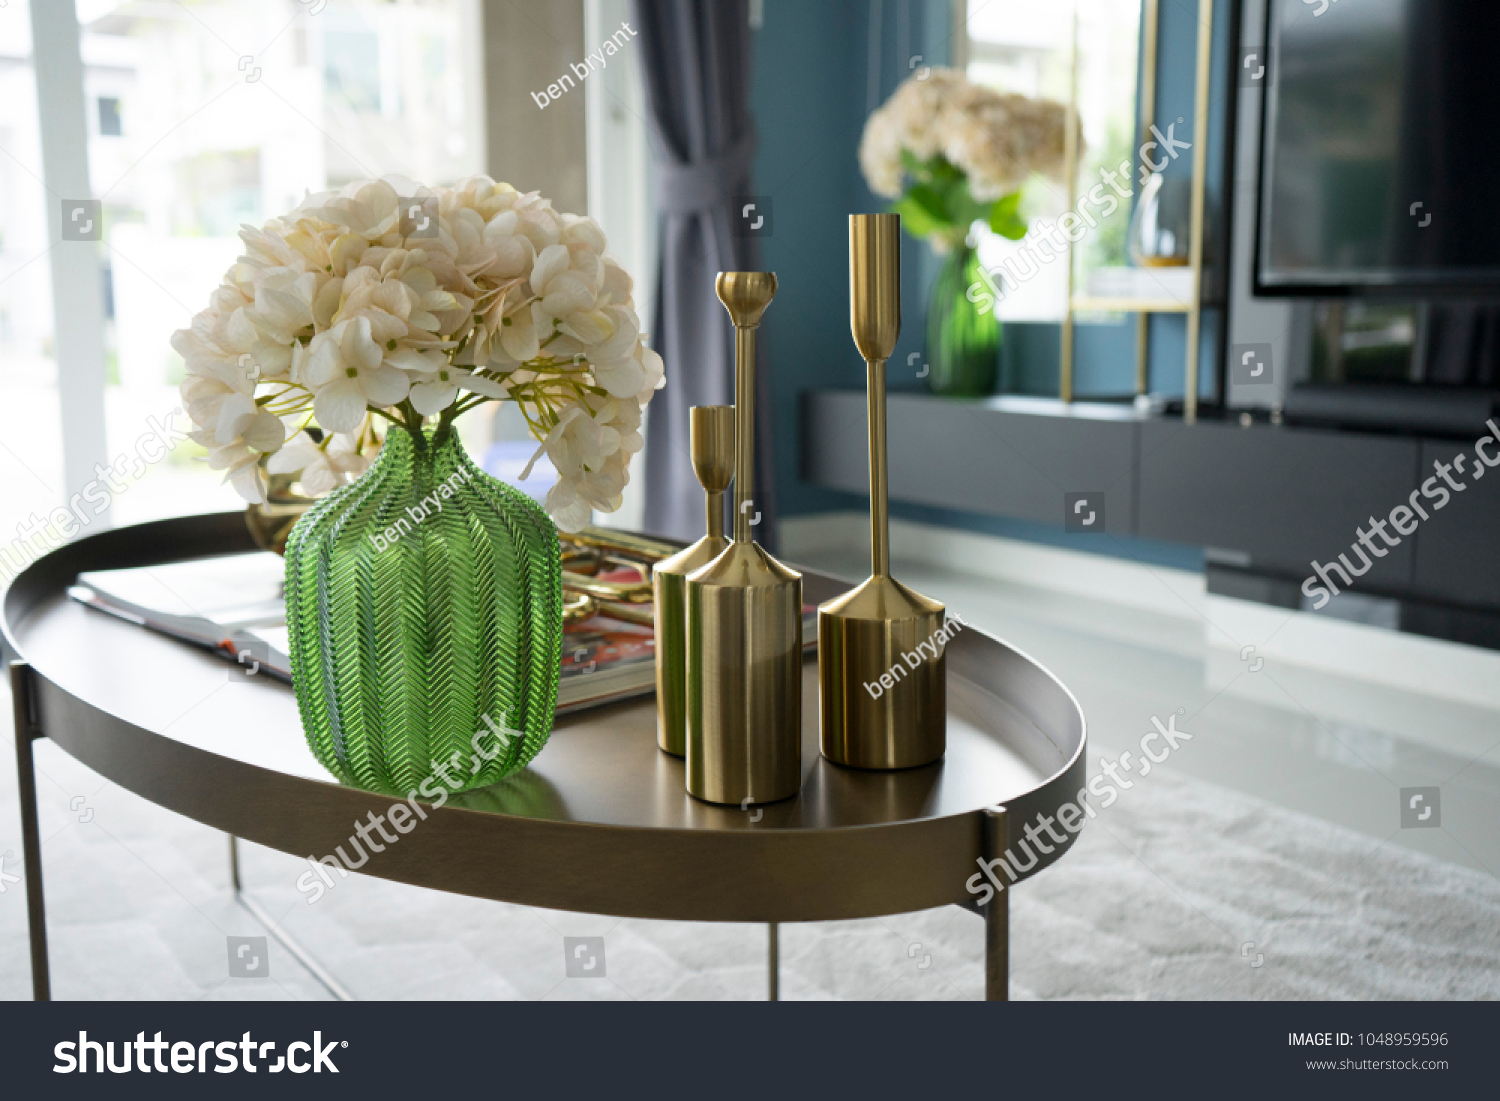 colorful and stylish living room with flower vase and gold trumpet on table. #1048959596